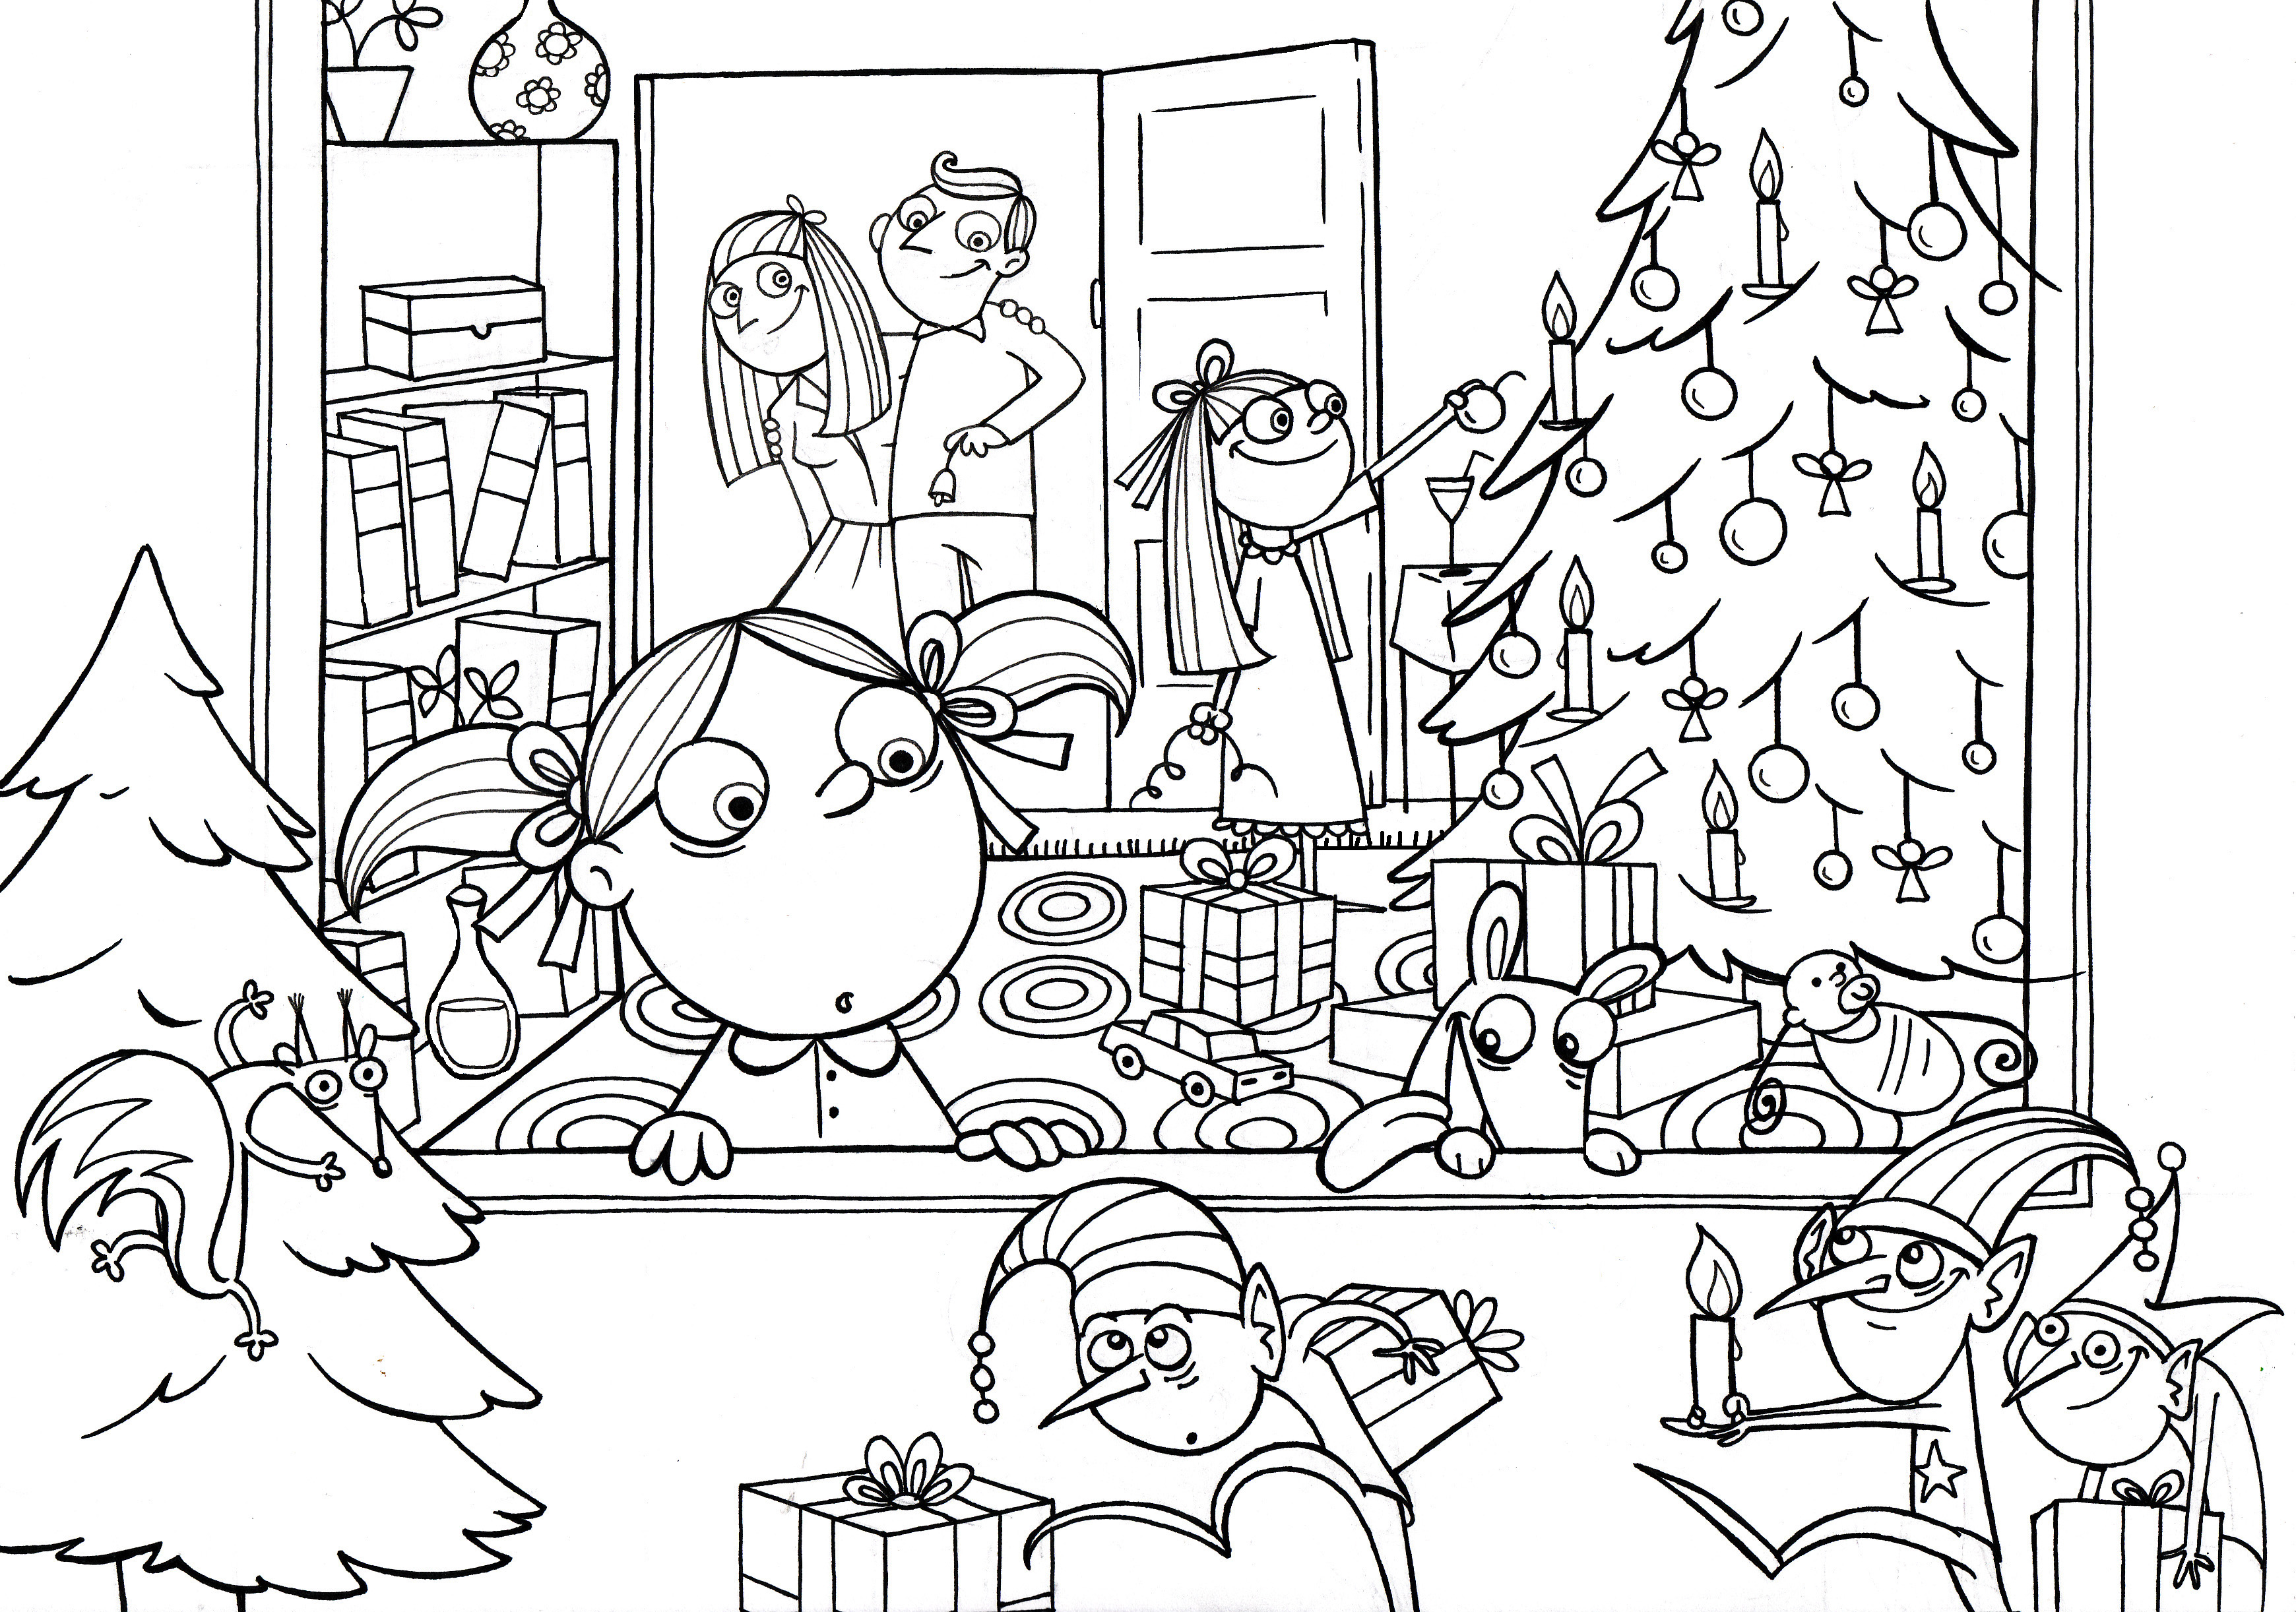 Christmas Village Coloring Pictures With Scene Pages 2023808